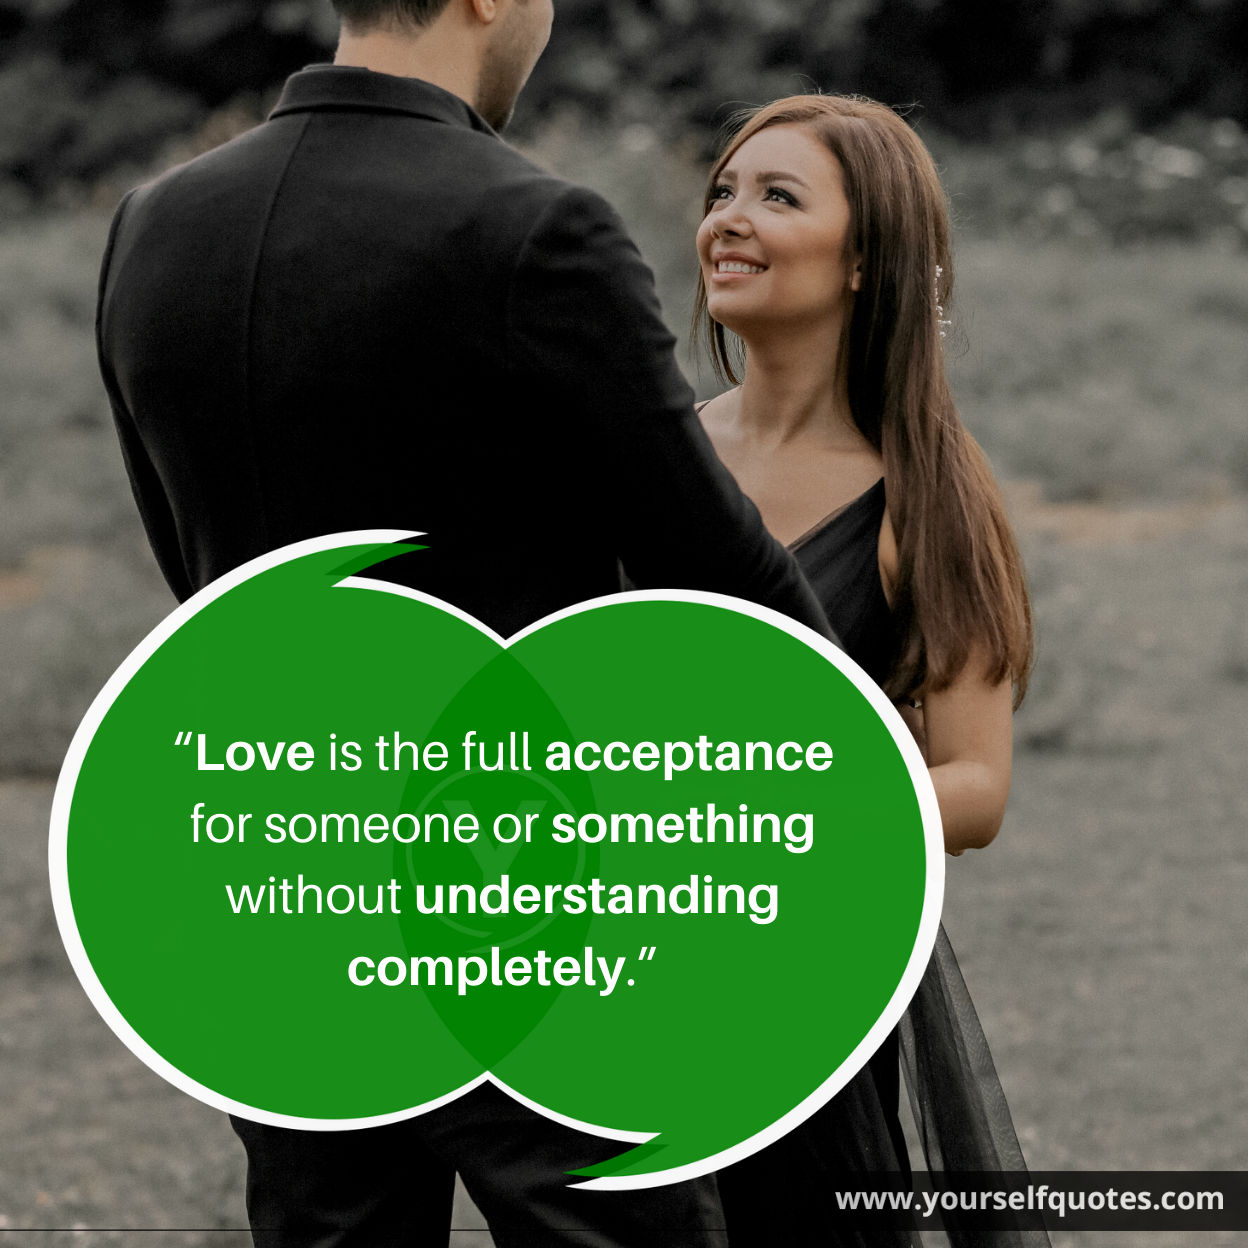 Famous Quotes on Love